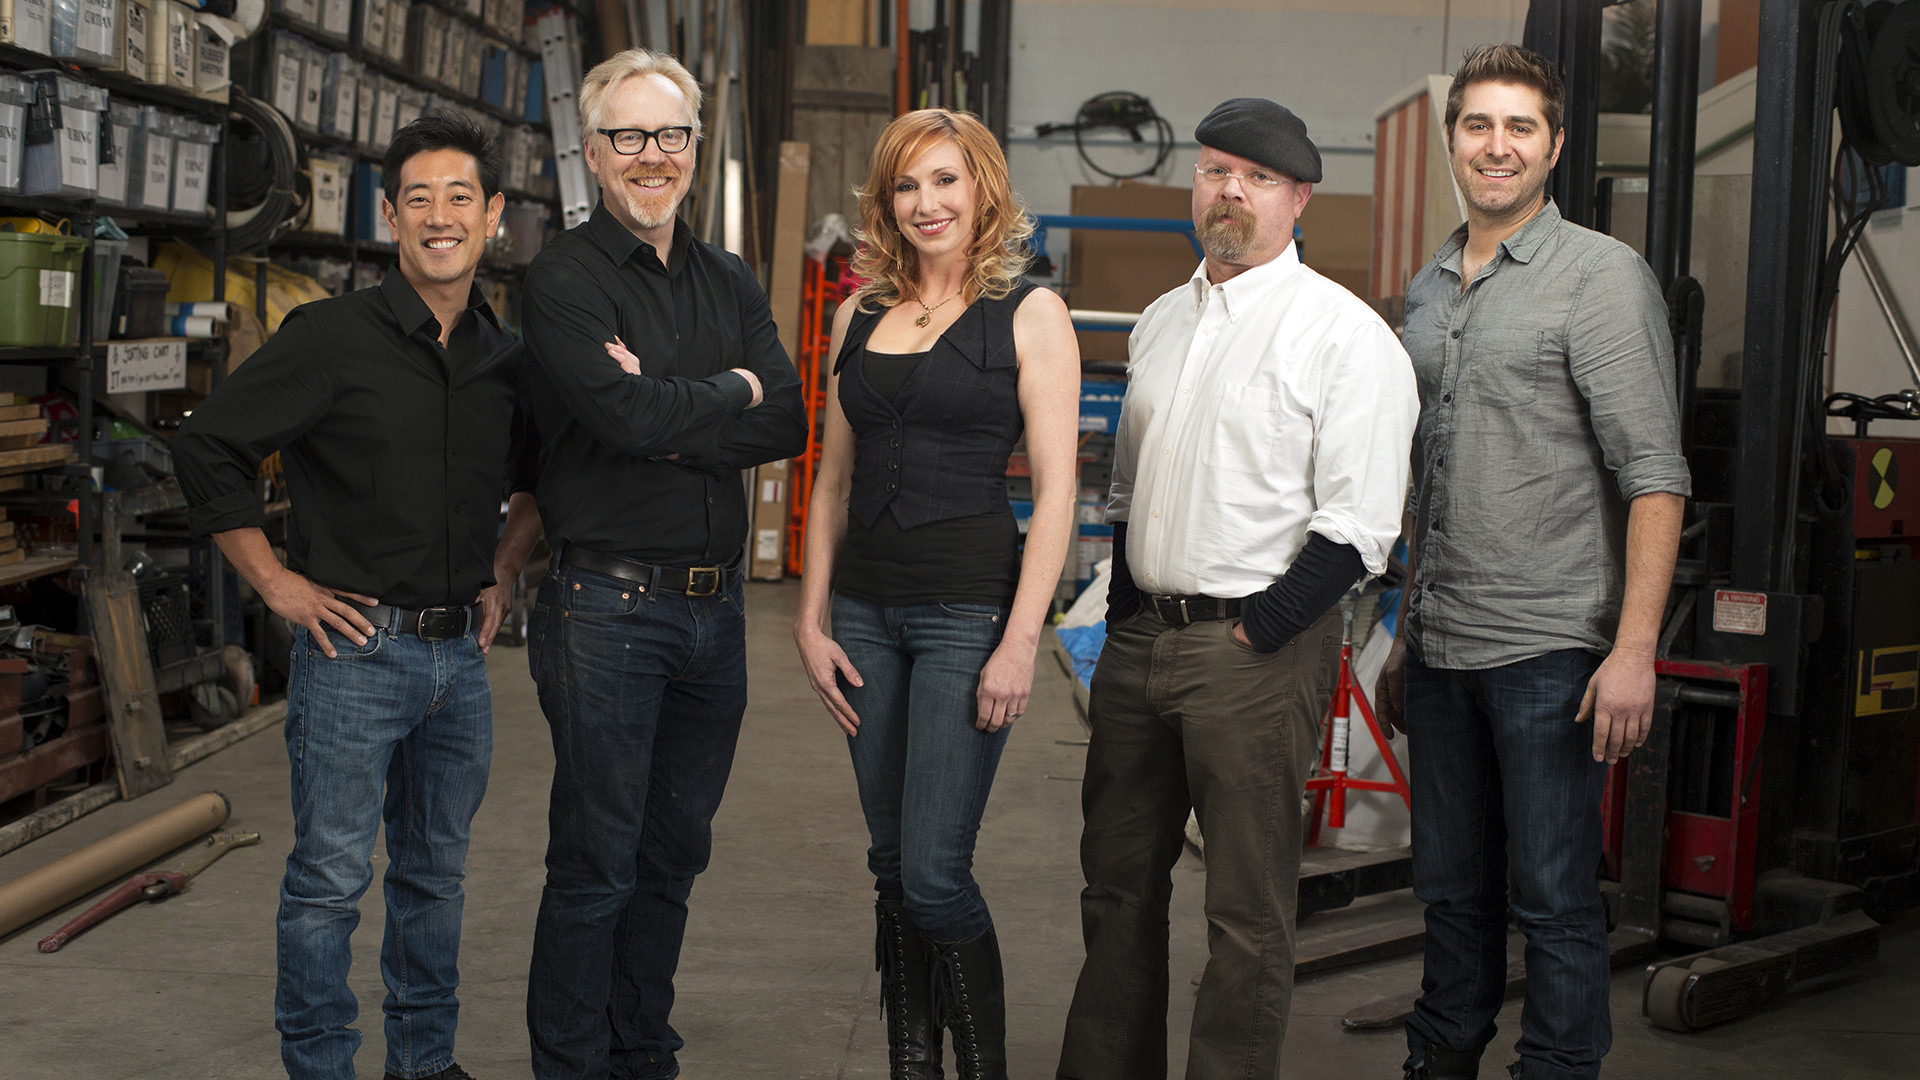 Show Mythbusters